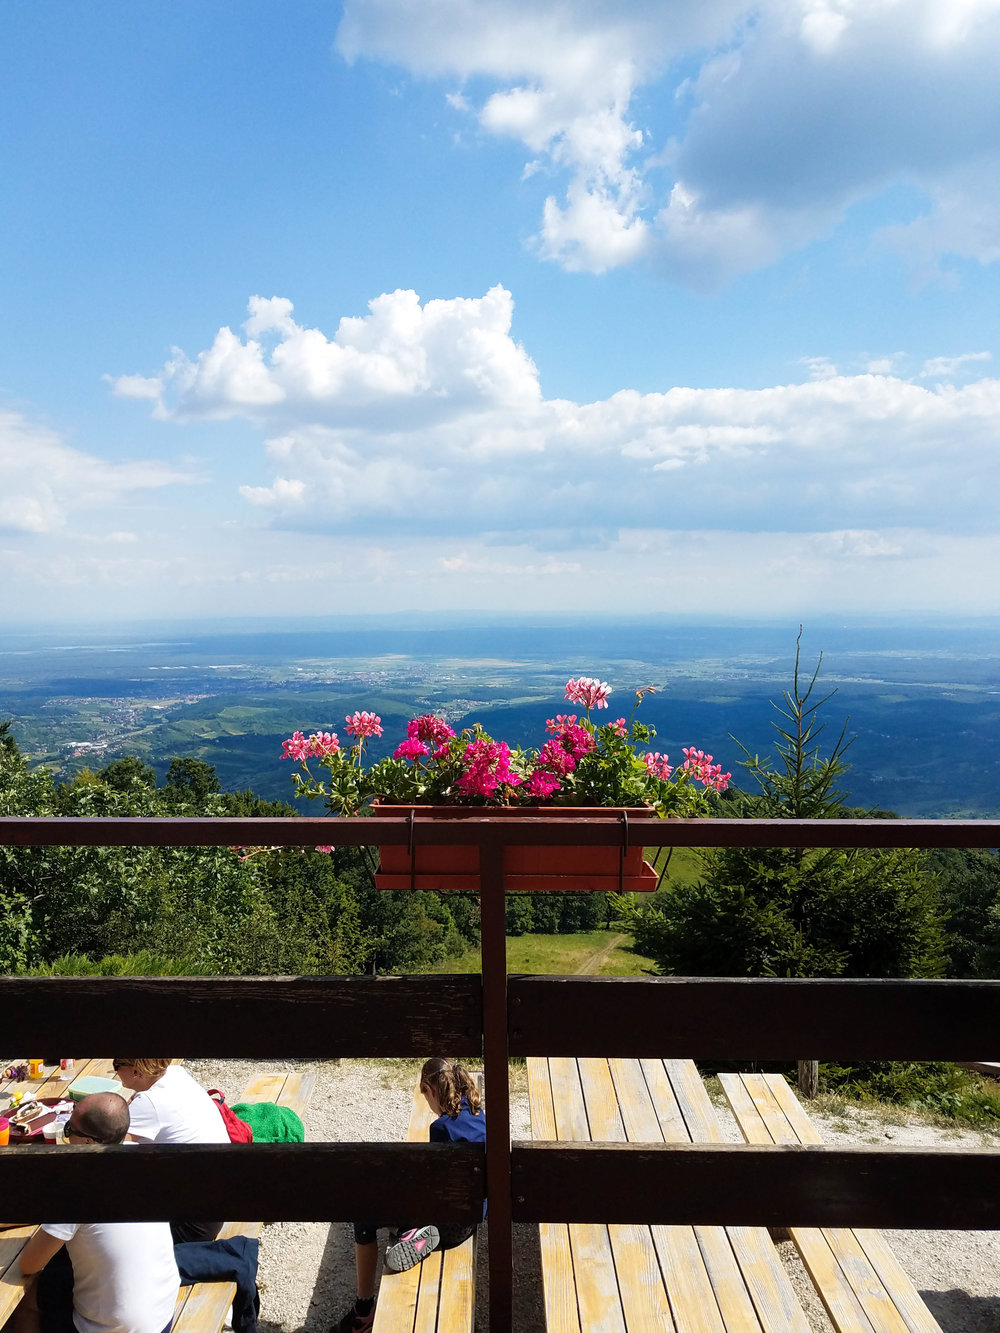 Lunch at Žitnica at the top of Samoborsko Gorje mountain